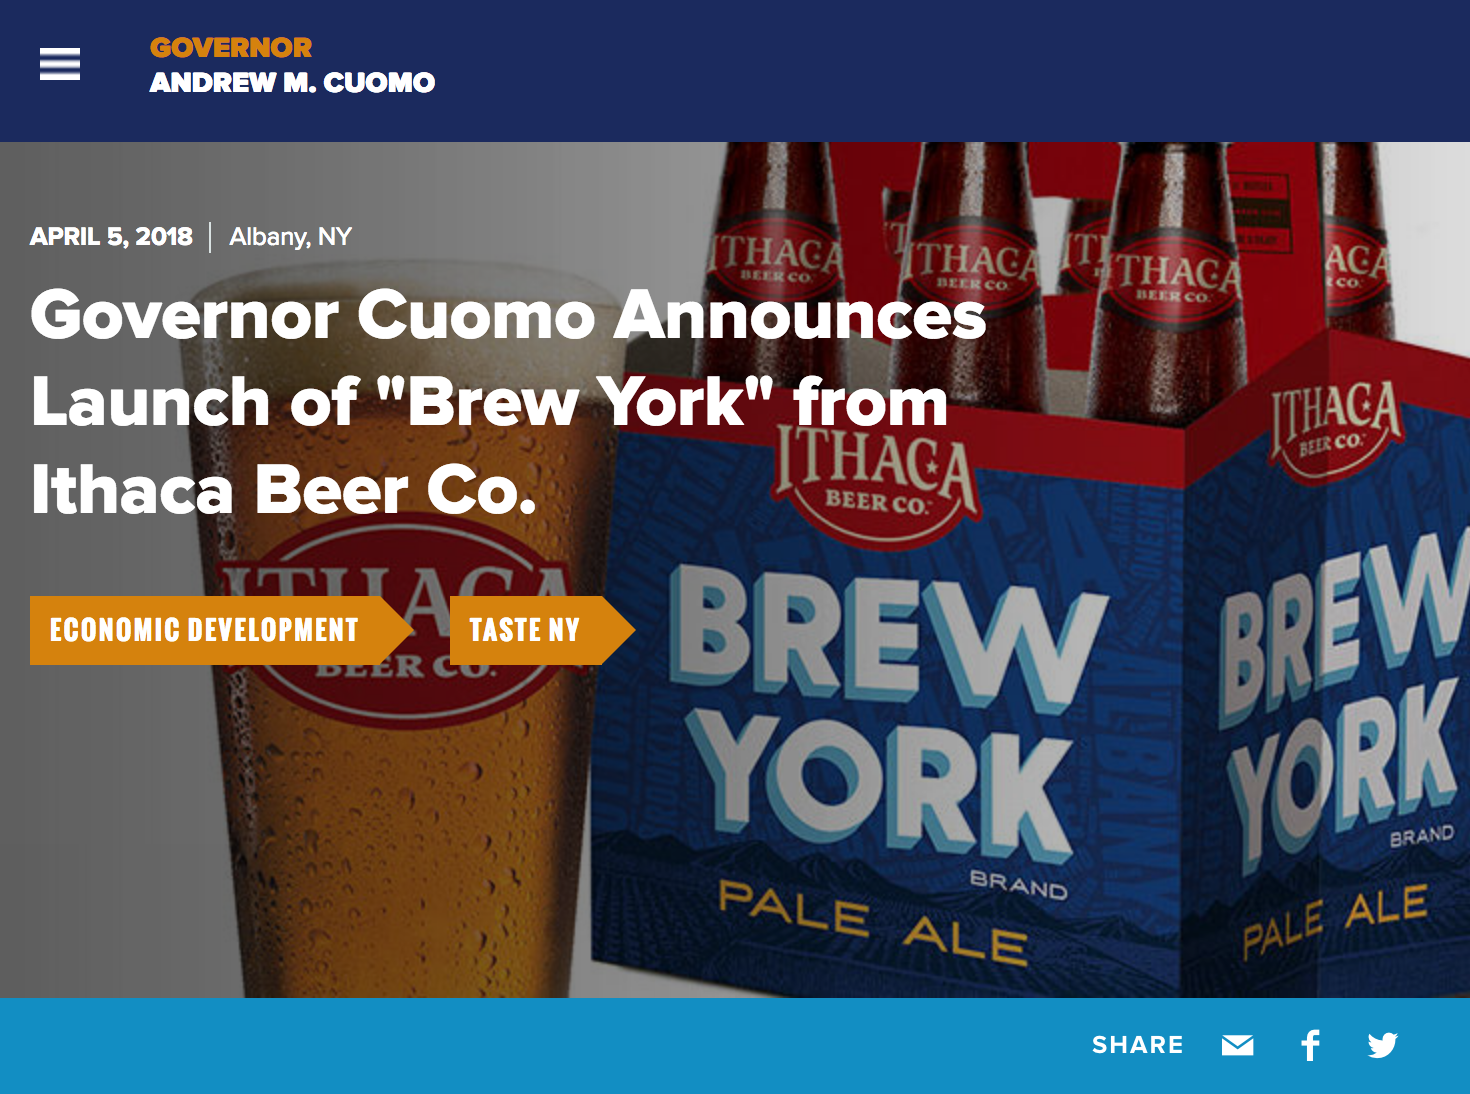 Governor Cuomo Release.png